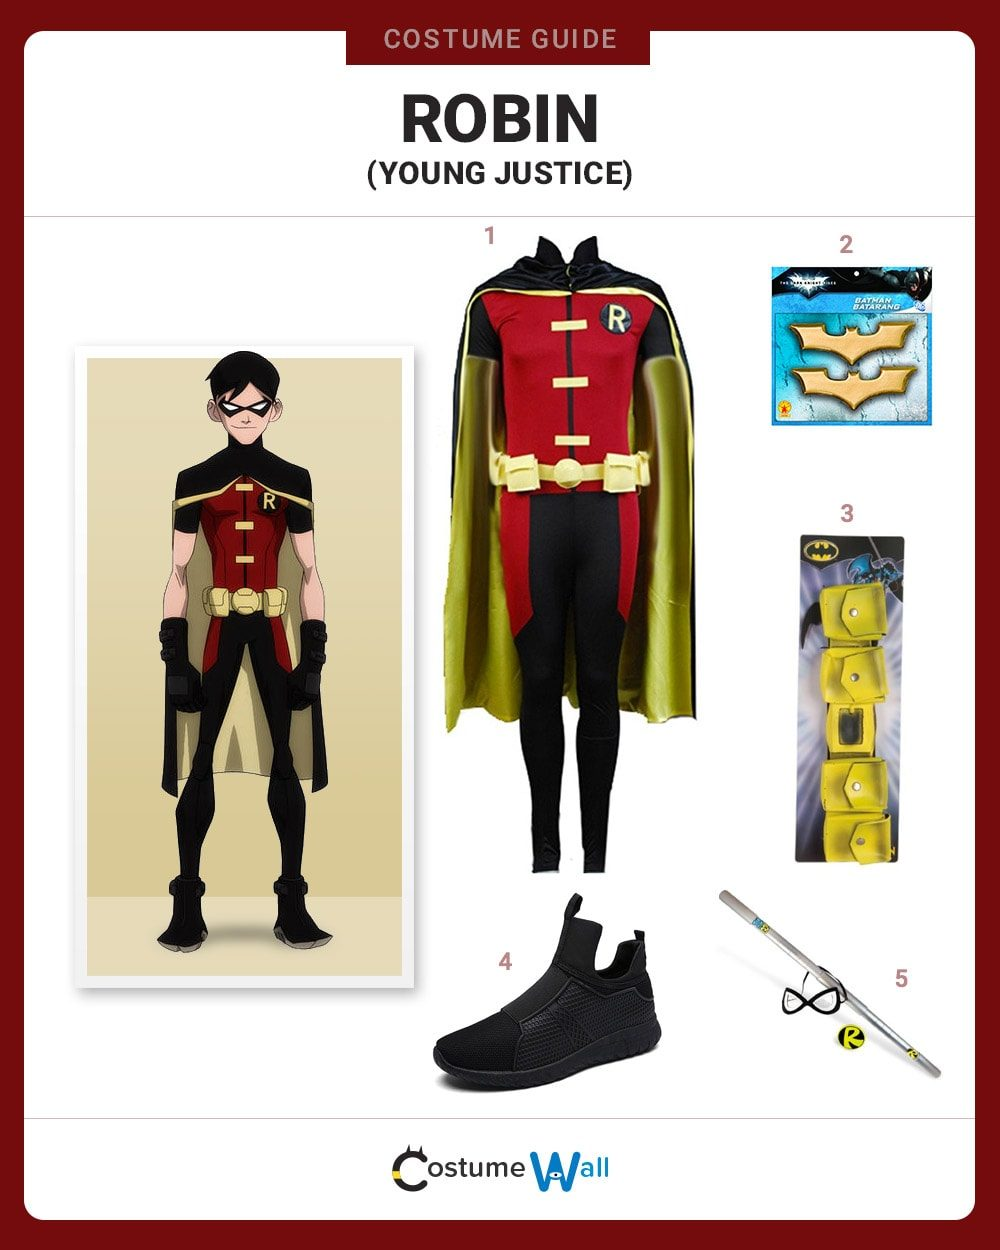 Robin (Young Justice) Costume Guide